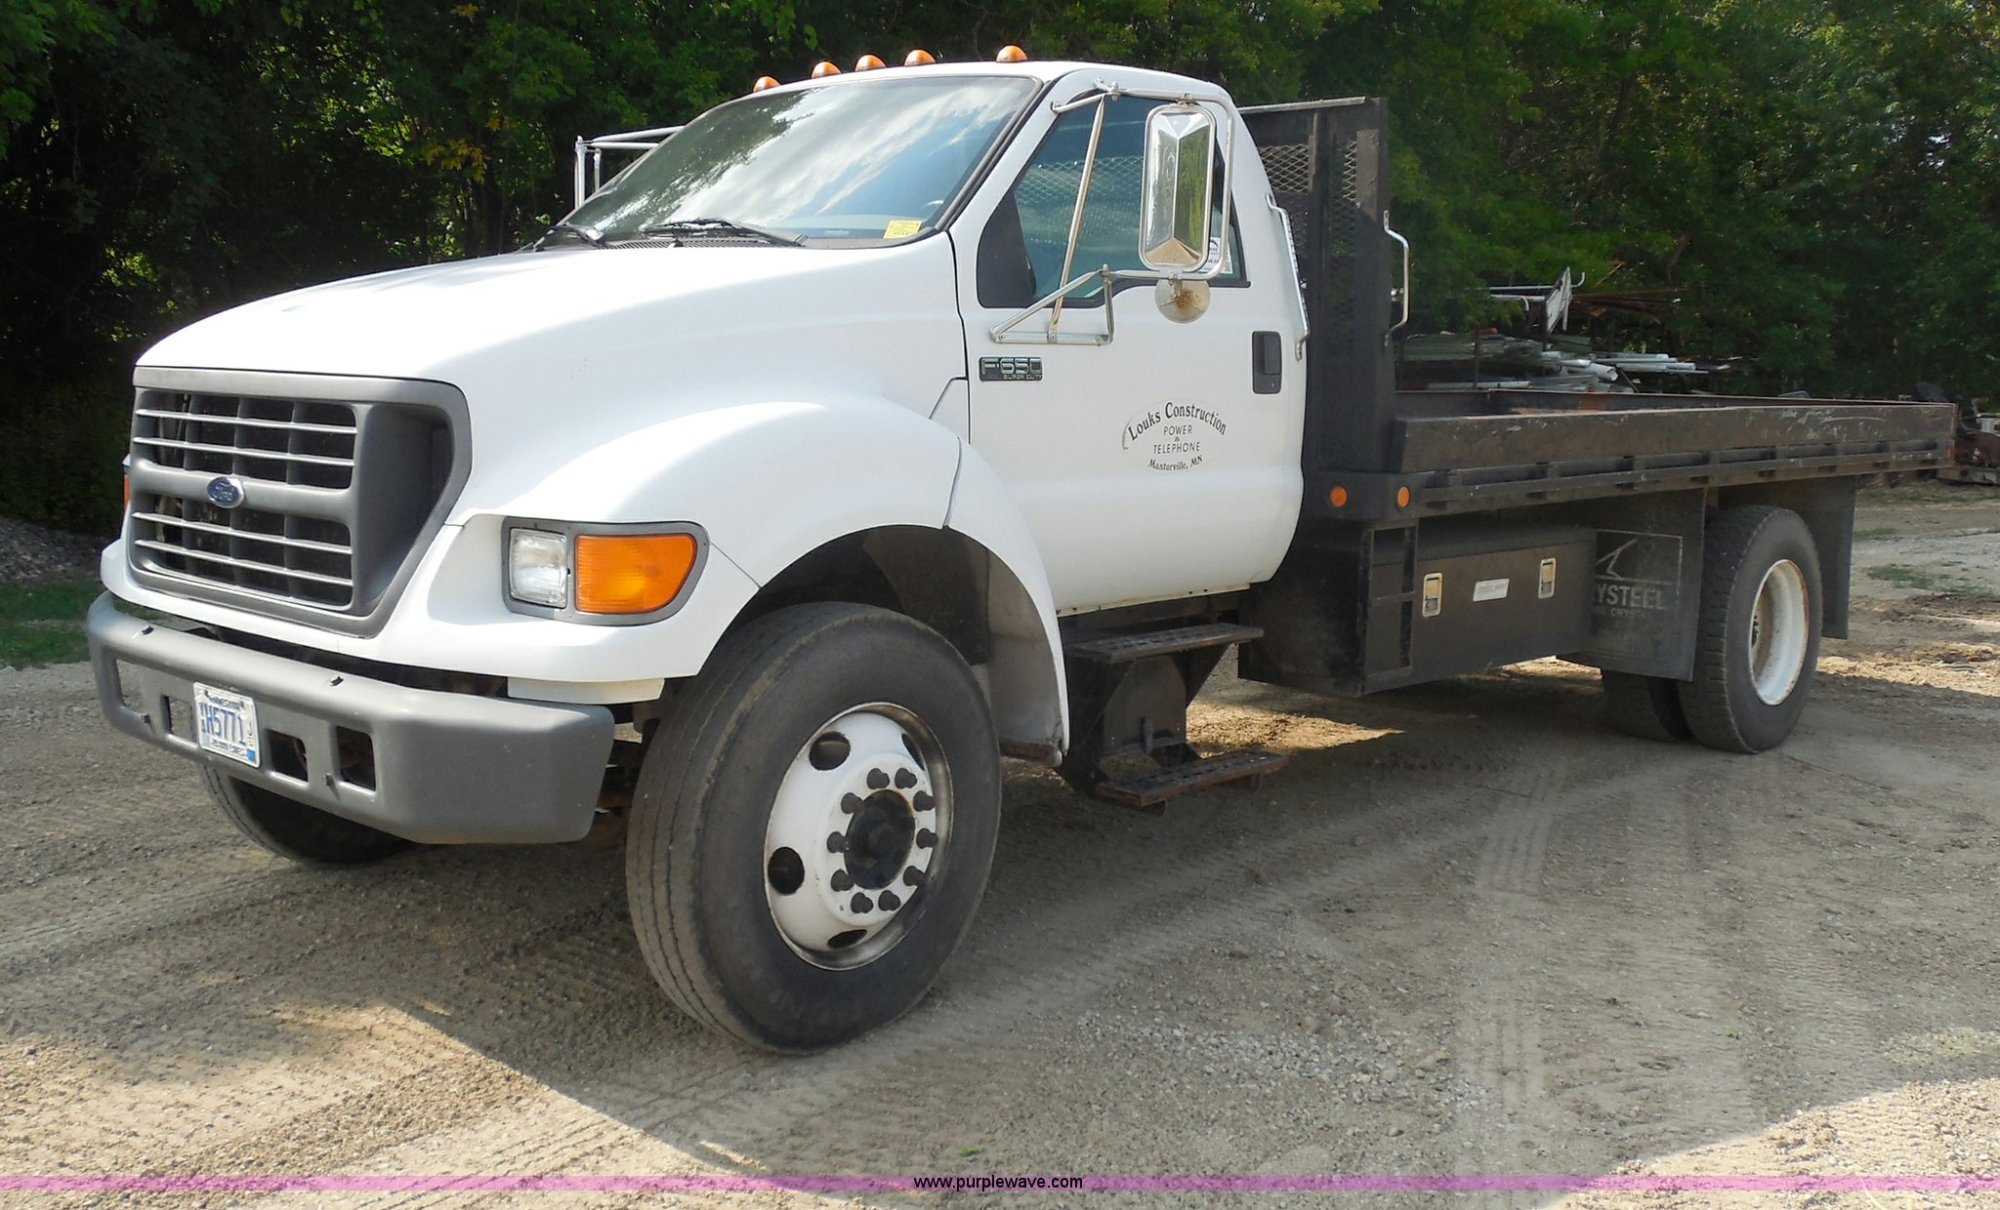 hight resolution of g8981 image for item g8981 2000 ford f650 super duty flatbed truck